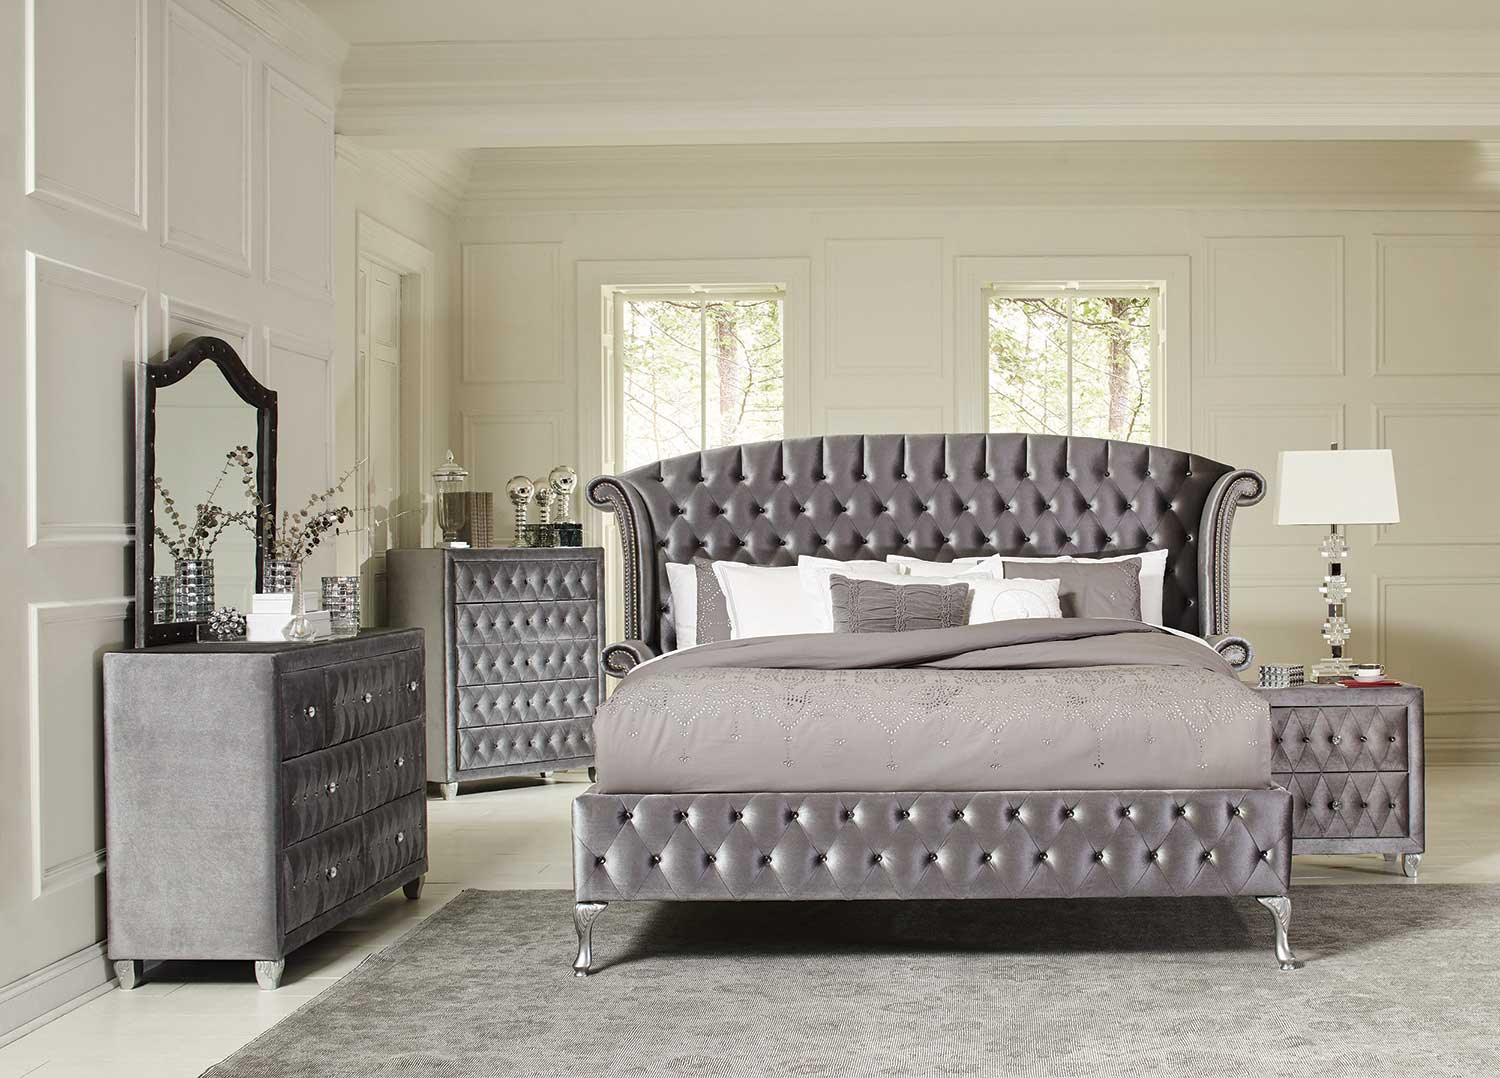 Coaster Deanna Upholstered Bedroom Collection - Silver Metallic - Grey Velvet